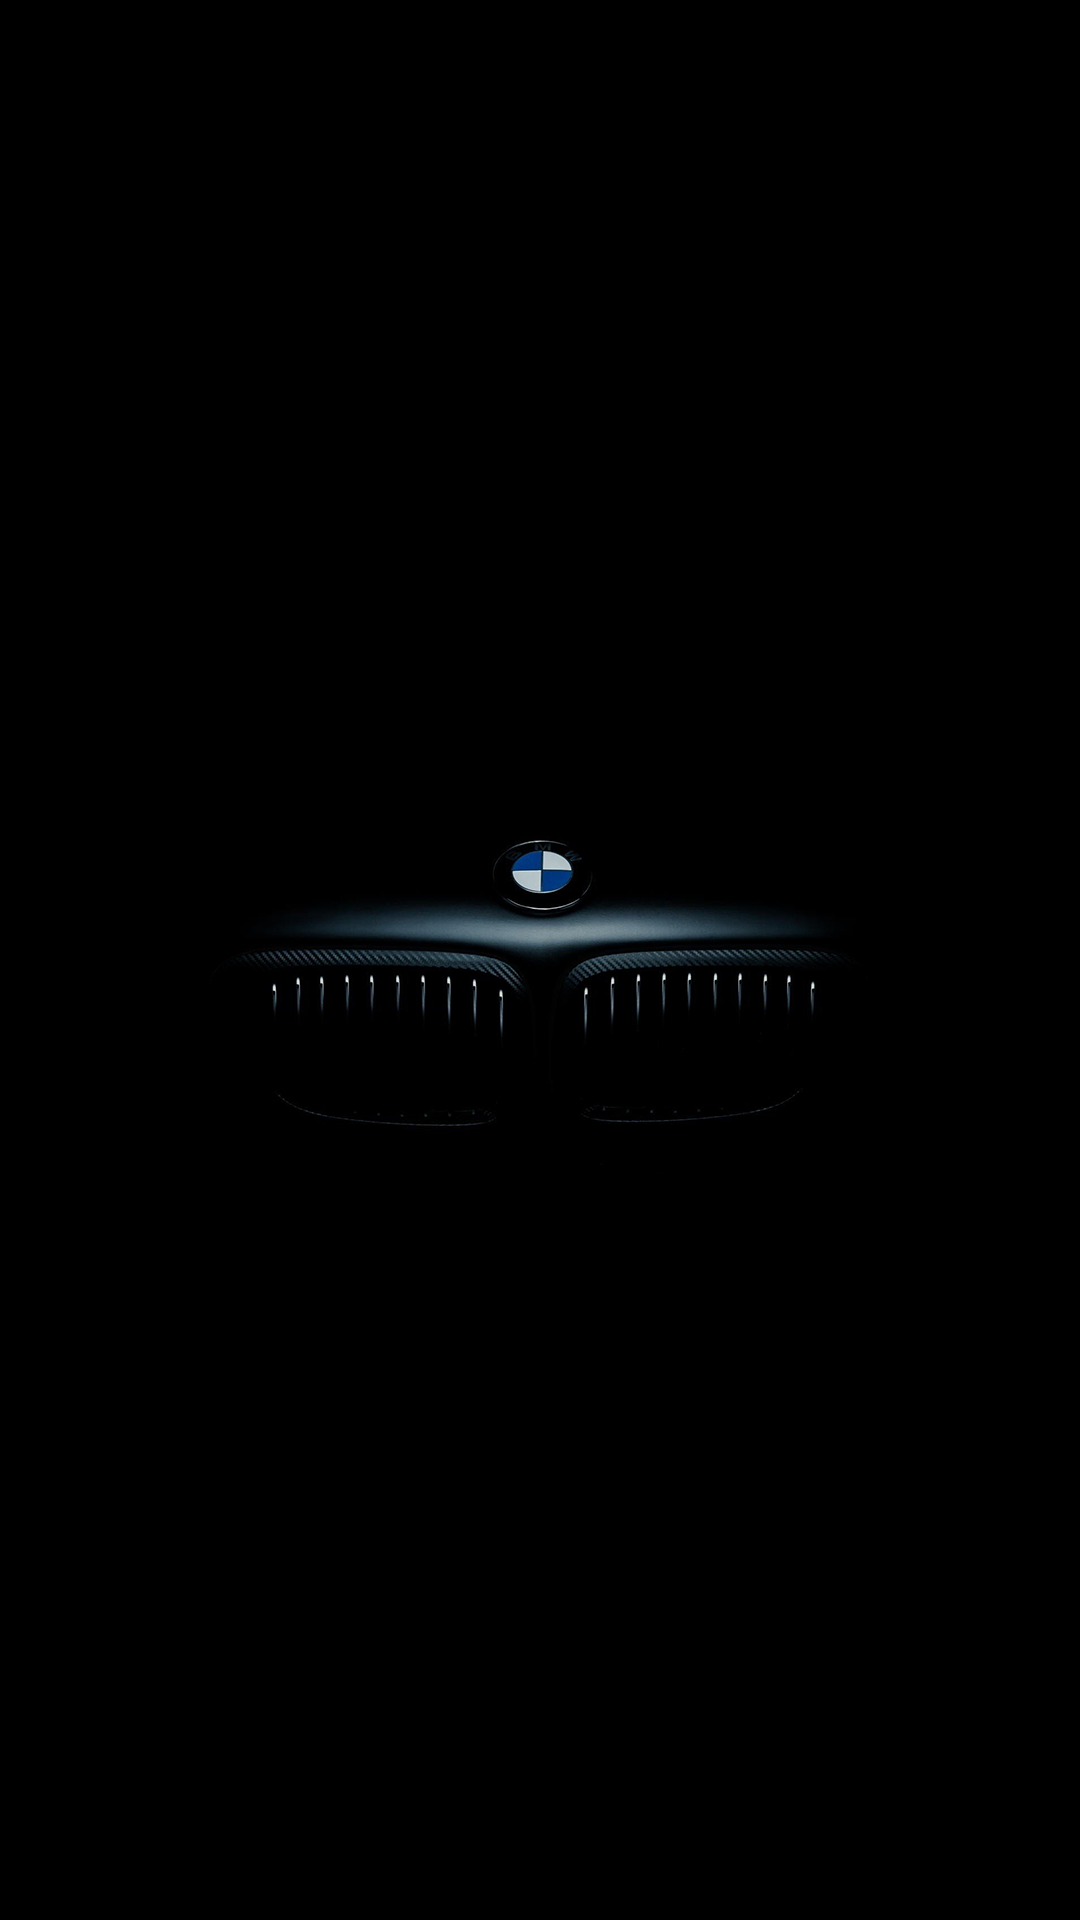 free hd bmw m3 power iphone wallpaper for download 0048